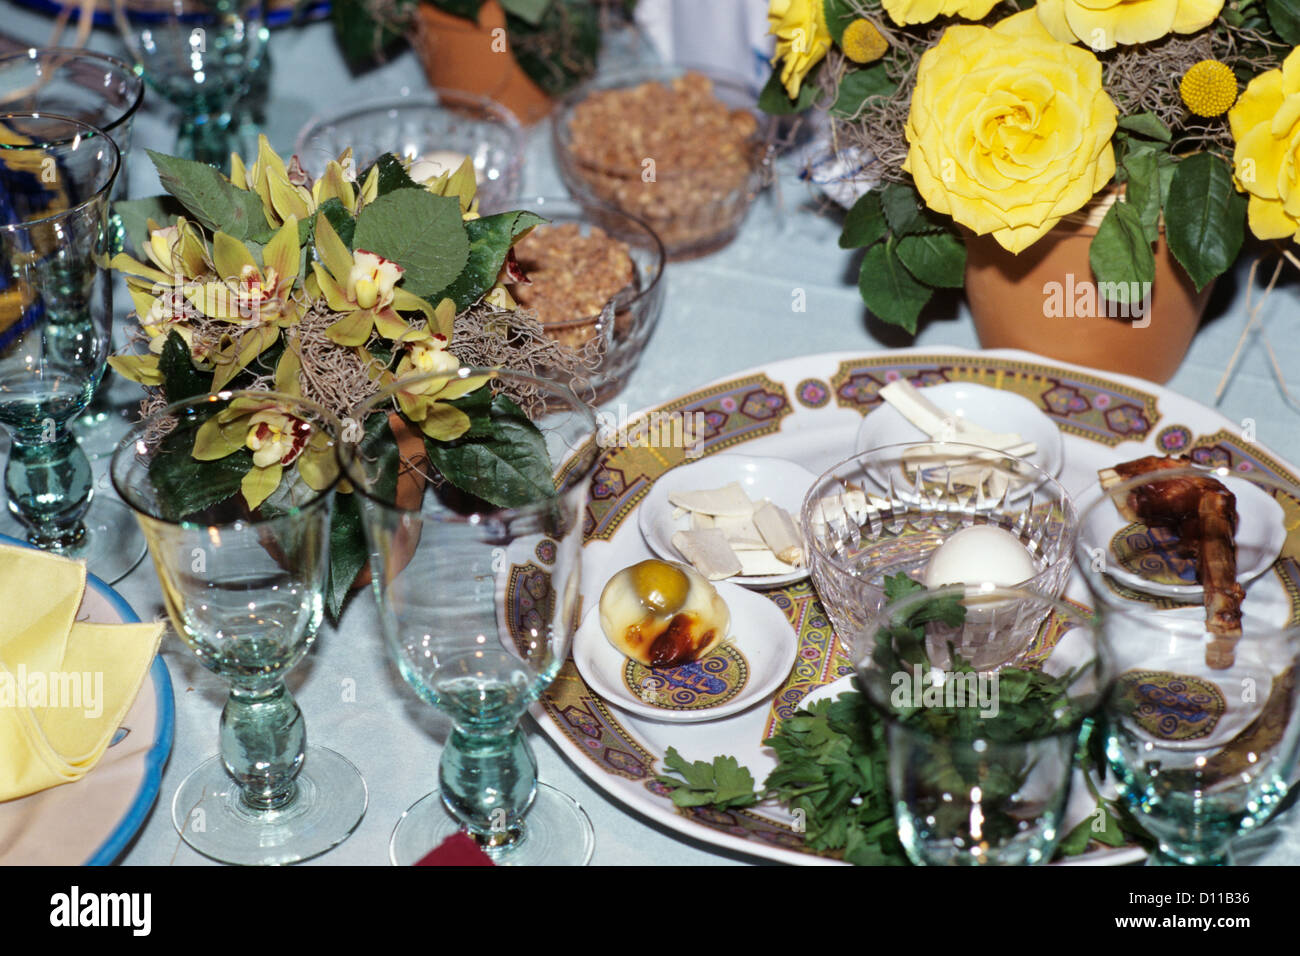 1990s PLACE SETTING FOR PASSOVER SEDER ON TABLE WITH FLORAL CENTERPIECE - Stock Image